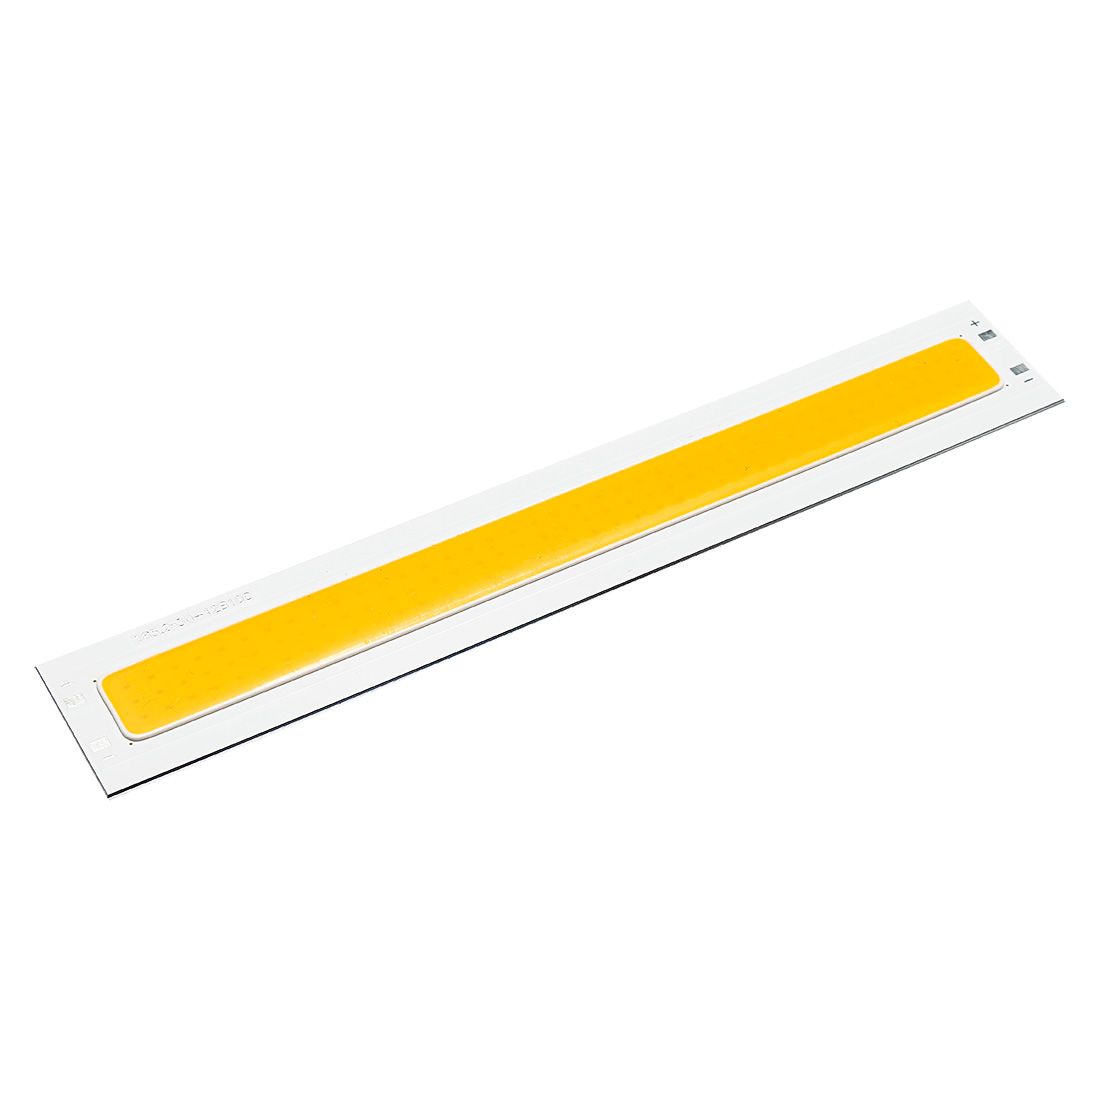 1500mA 50W COB LED Strip Light Lamp Chip Warm White 30-36V Luminous Surface